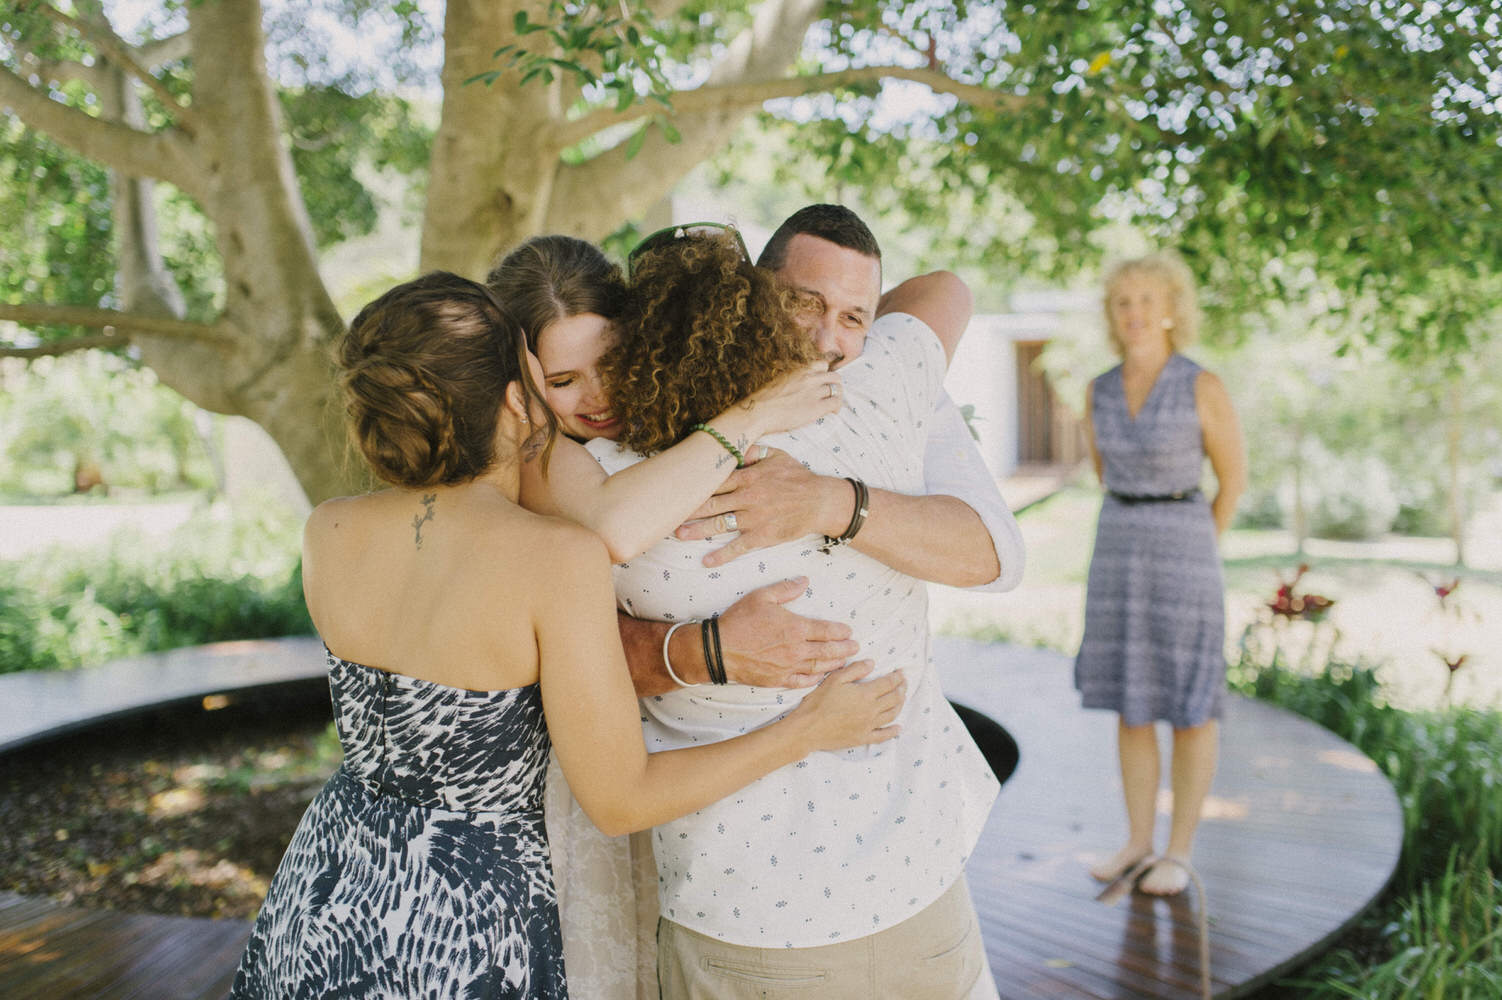 kelsie_and_ryan_elope-sophie_baker_photography-264